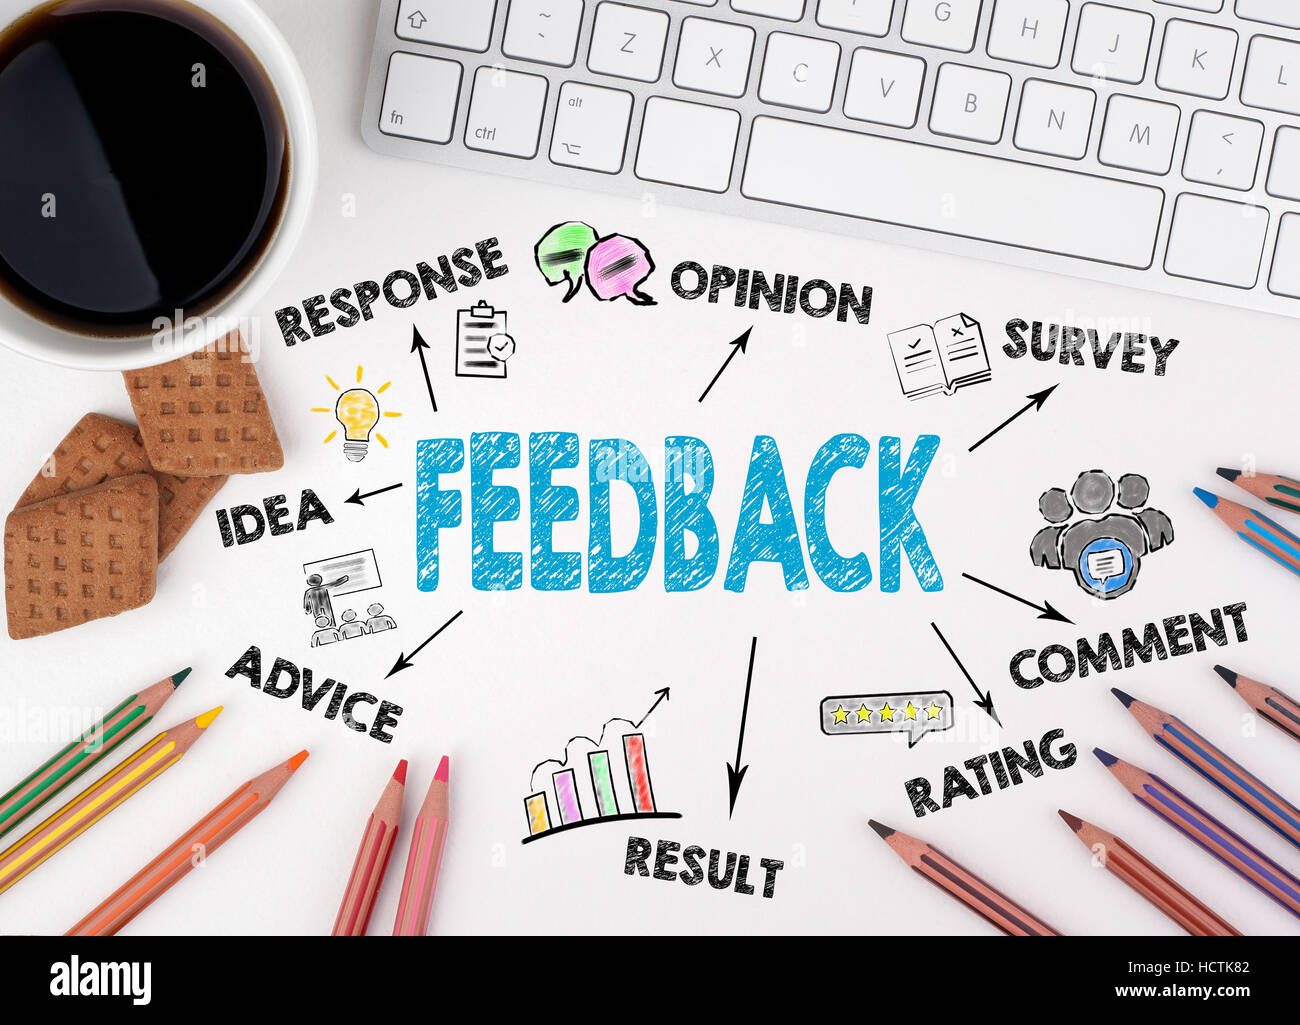 Feedback concept. On the table a coffee mug and a computer keyboard - Stock Image